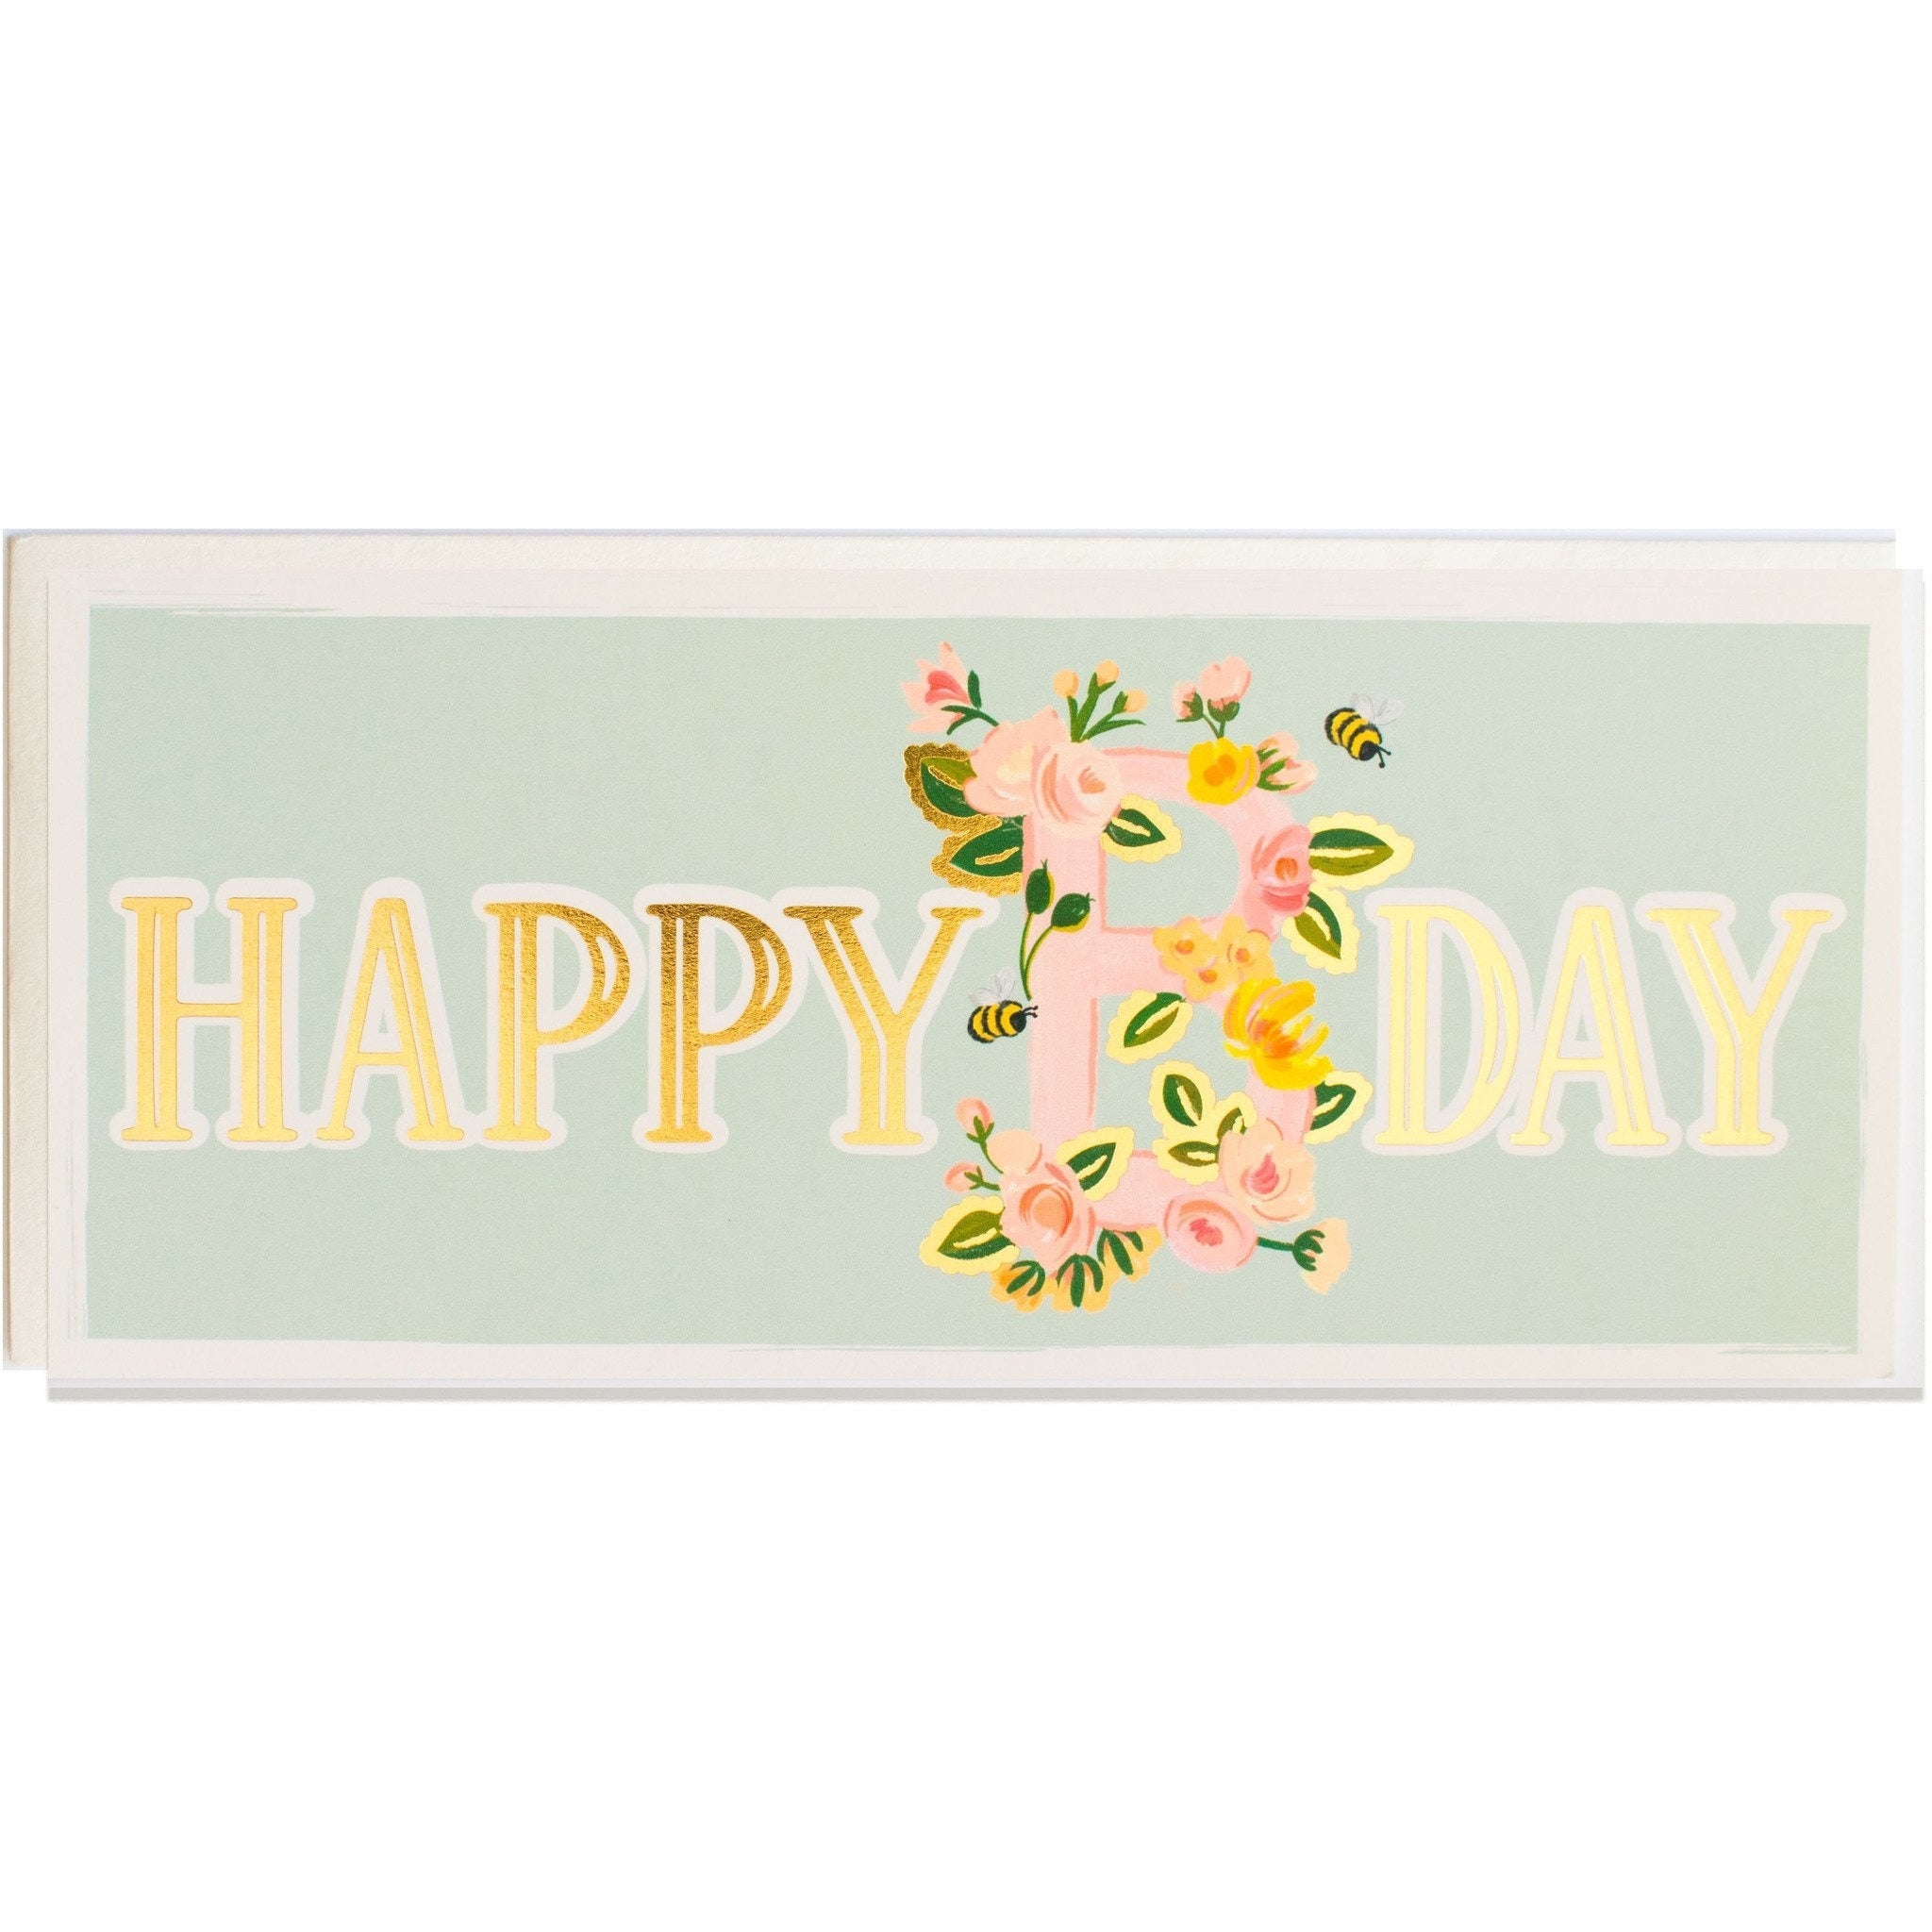 Happy Birthday Floral and Gold Foil Long Birthday Card w/ Envelope - The First Snow